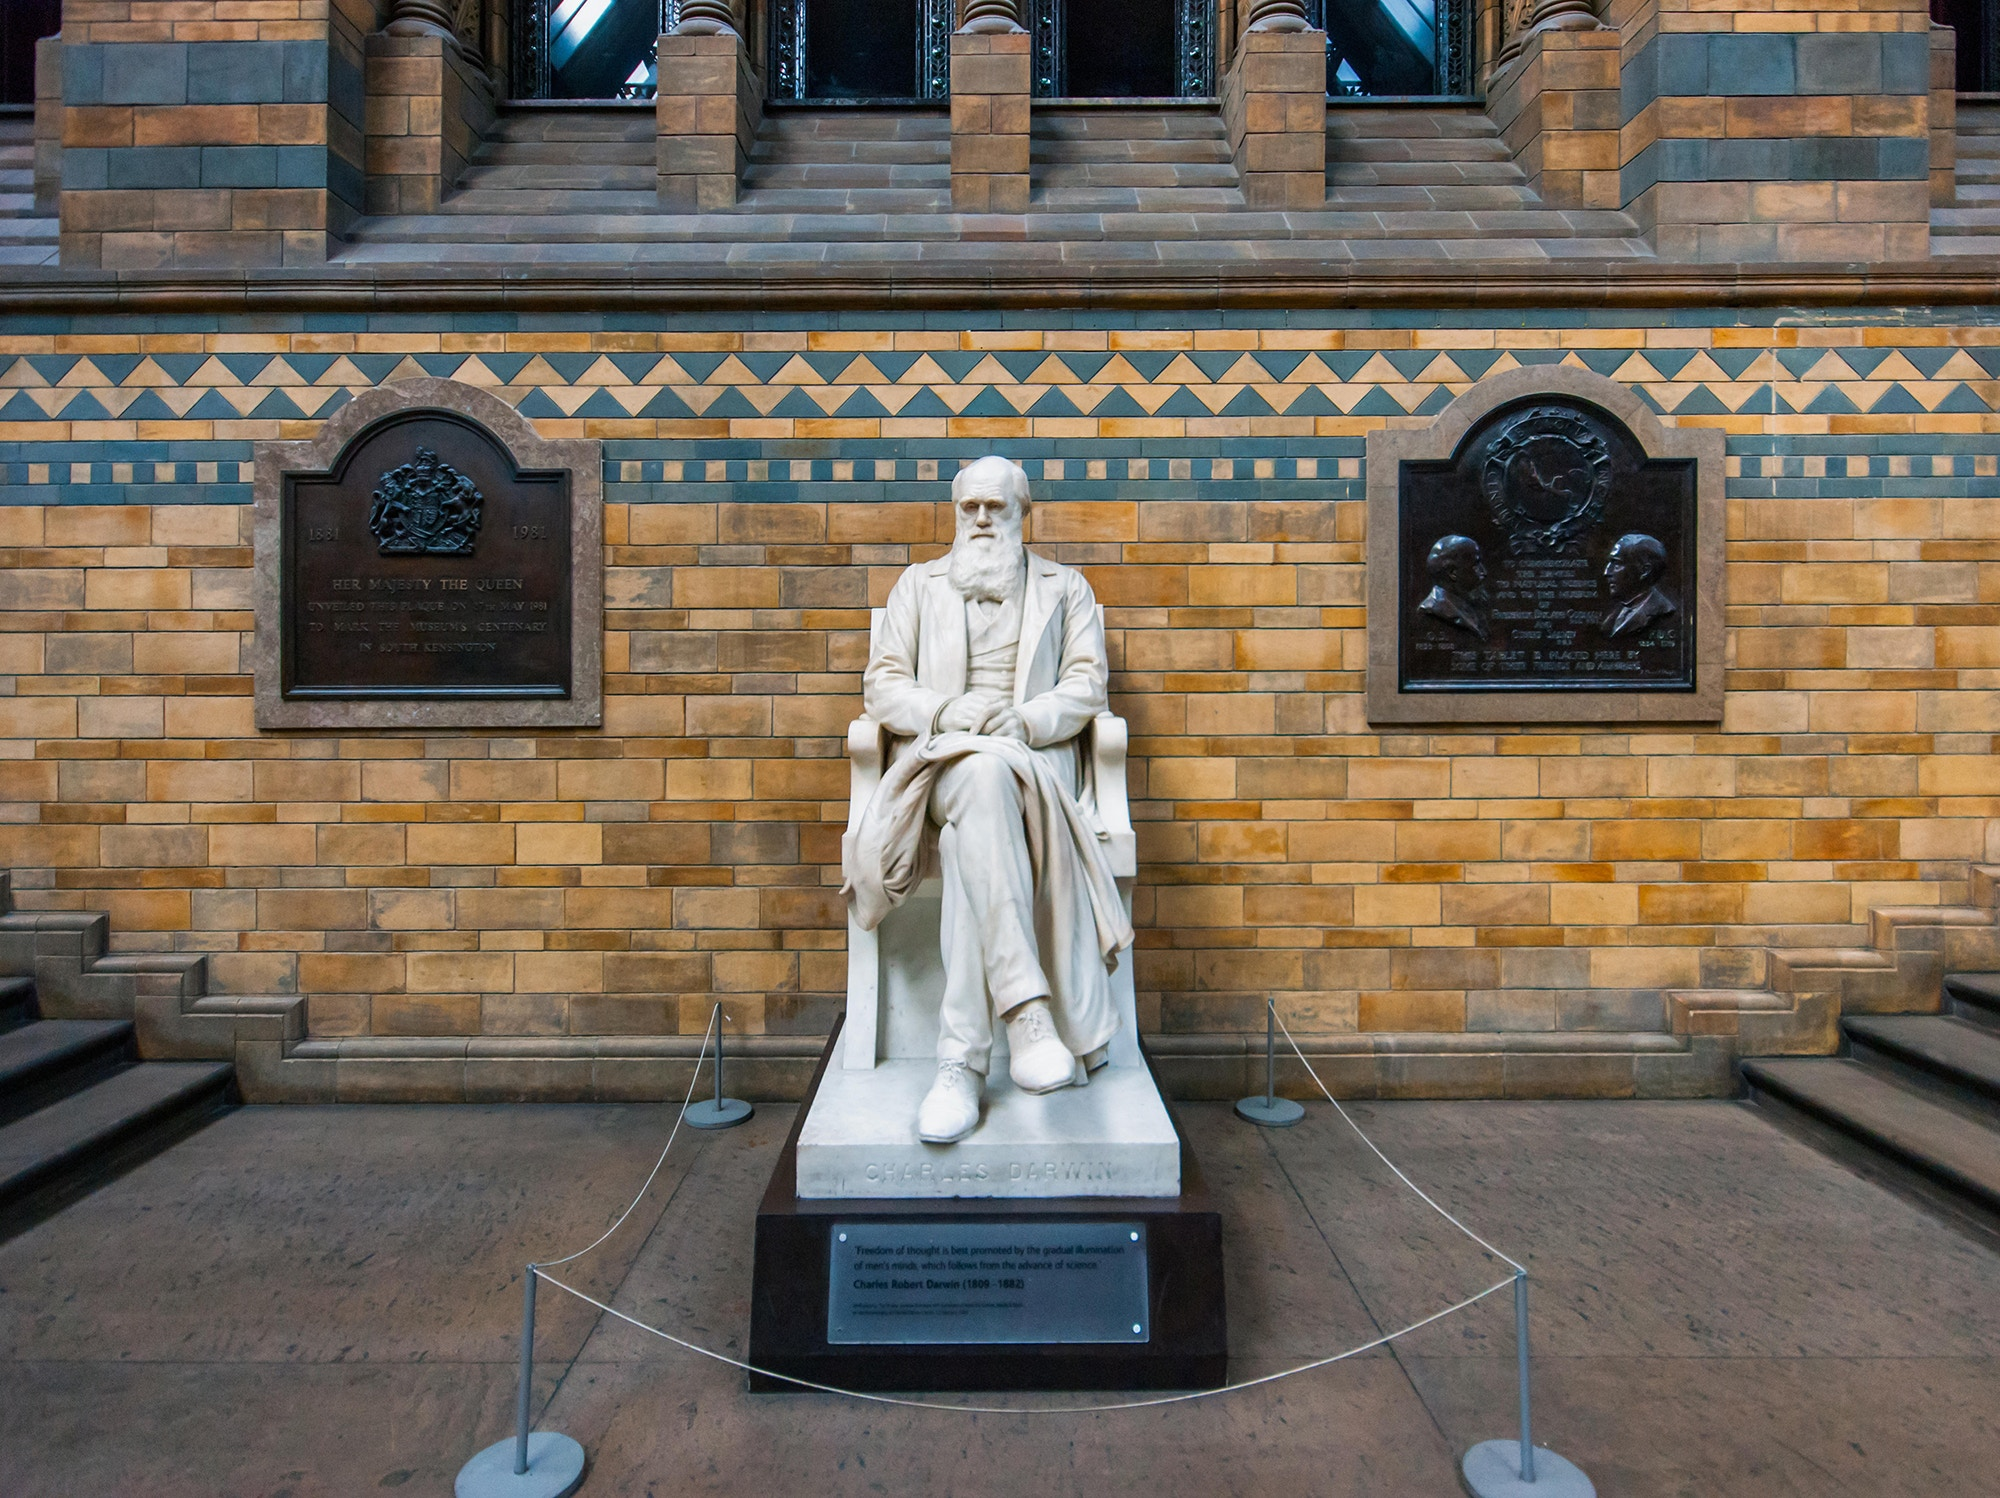 Marble statue Charles Darwin by Joseph Edgar Boehm in the Hintze Hall of the Natural History Museum in London